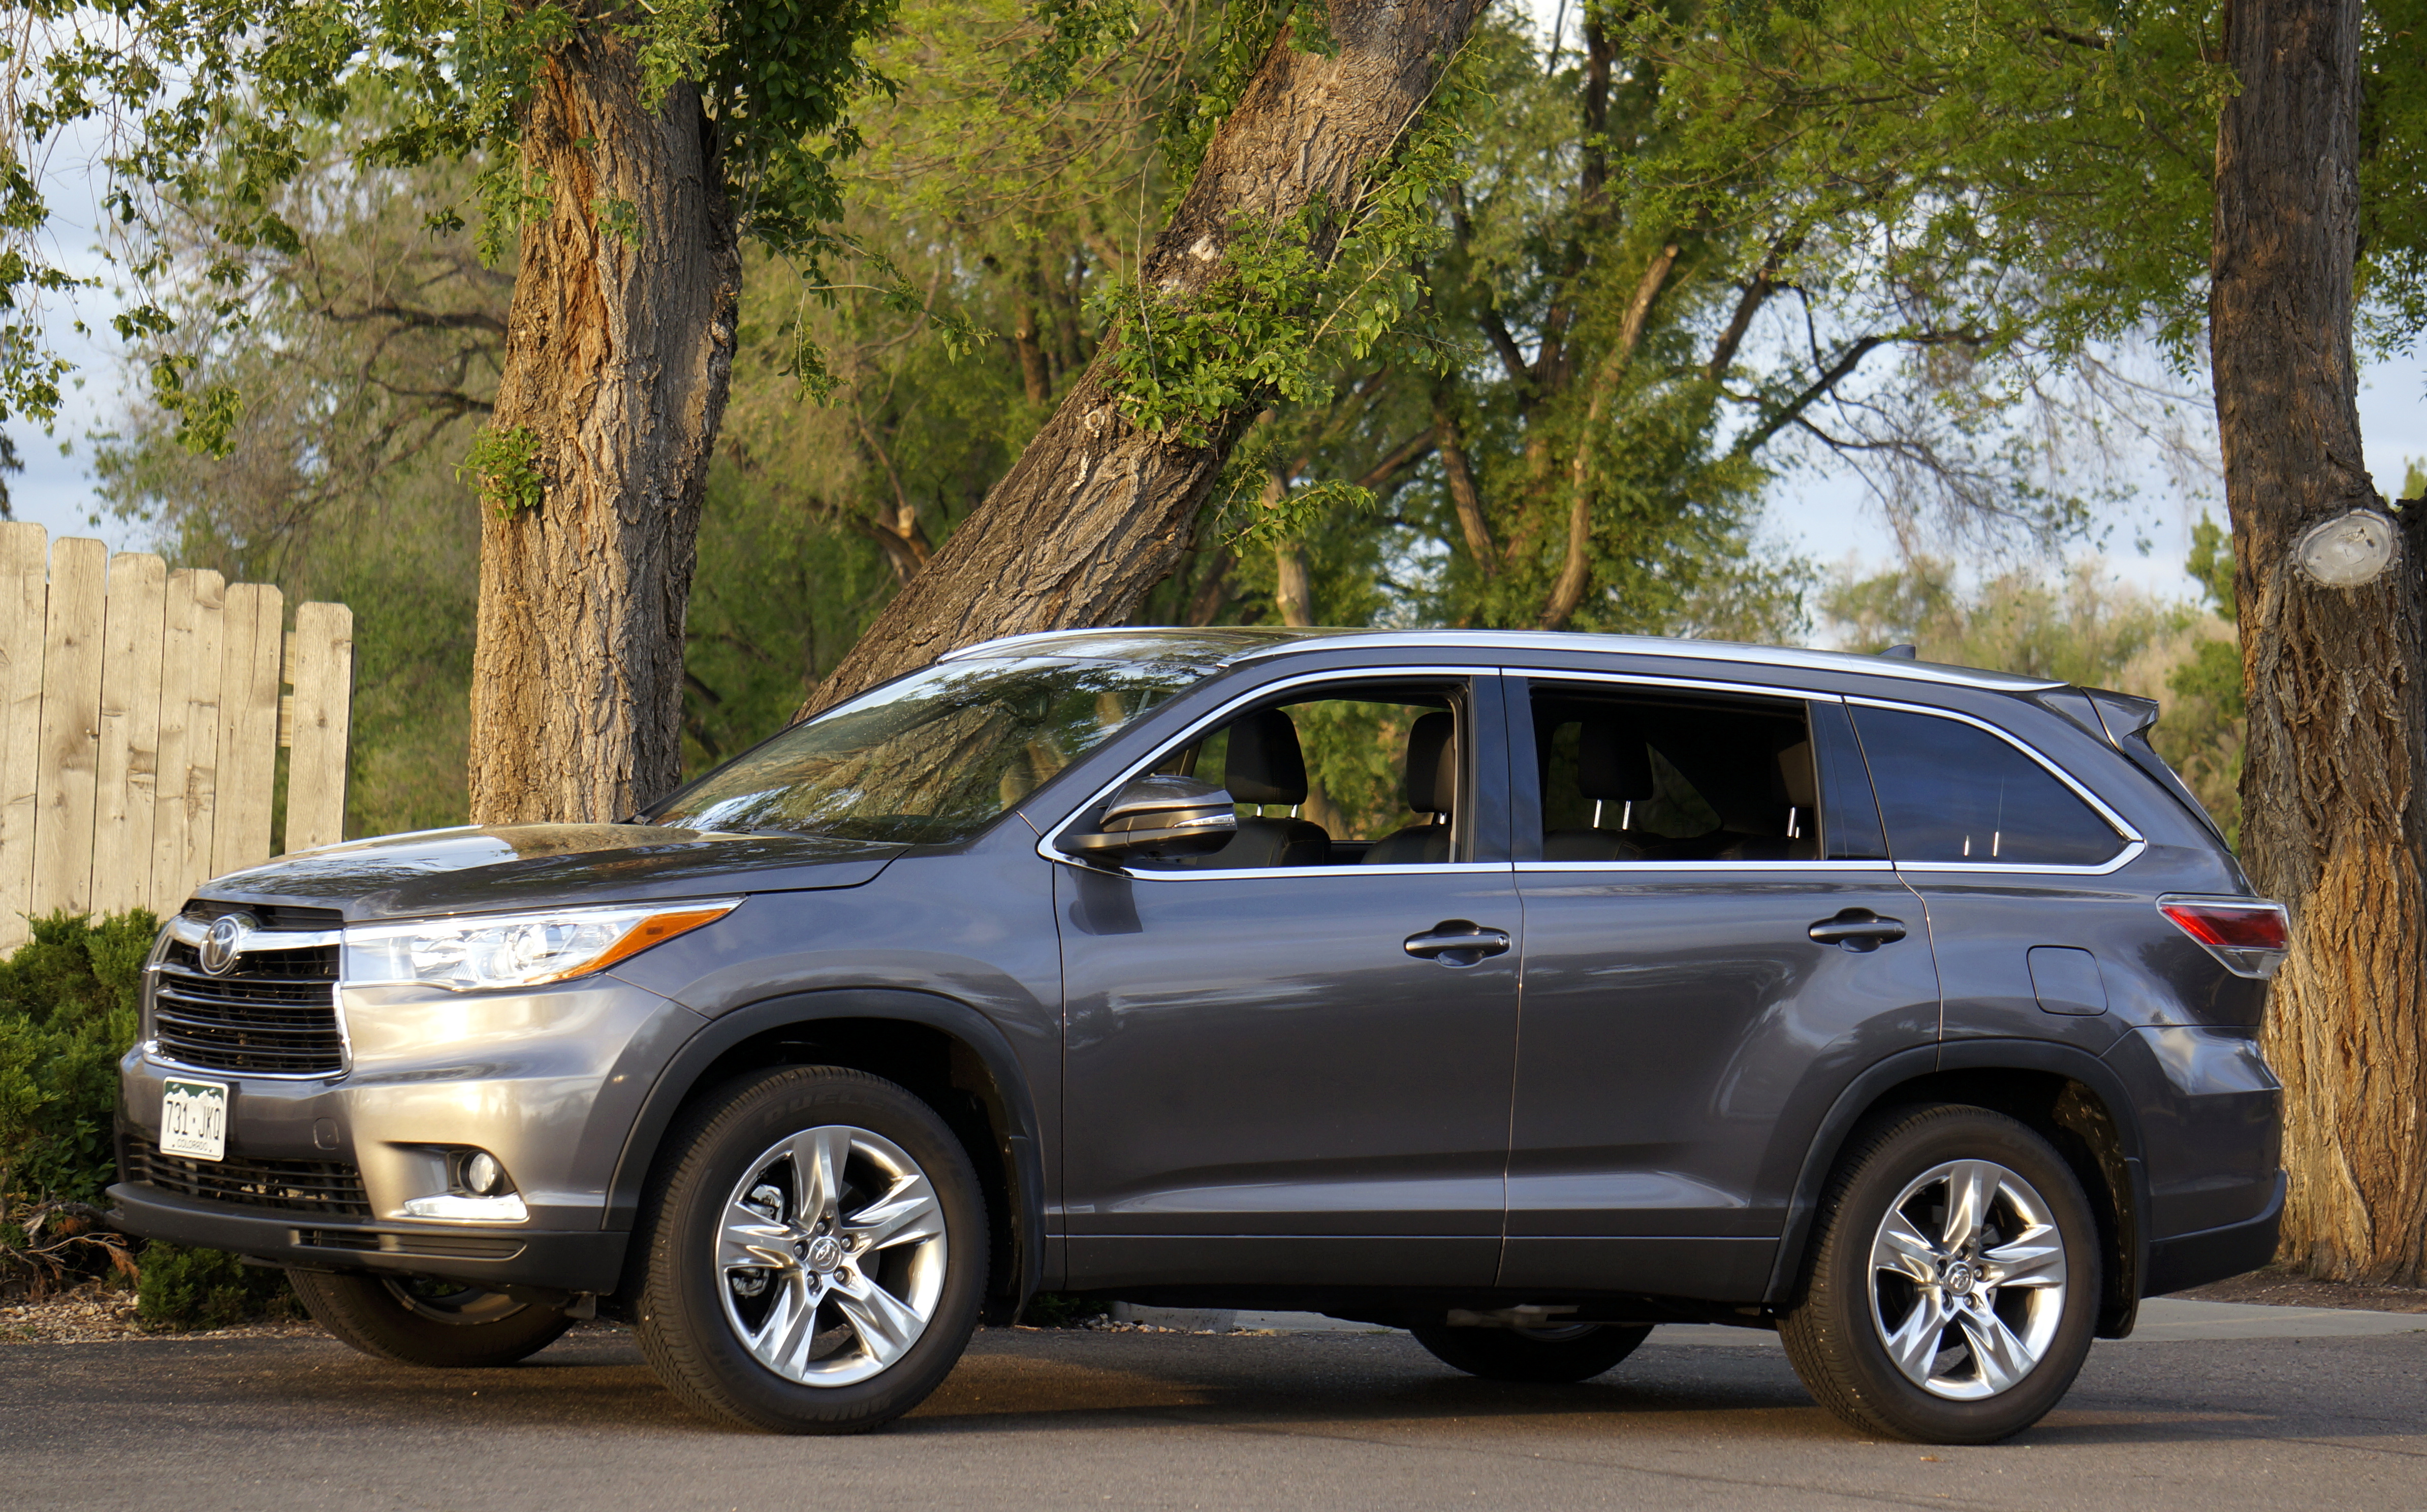 photos msrp options specs trims ca research autotrader toyota reviews highlander price hybrid